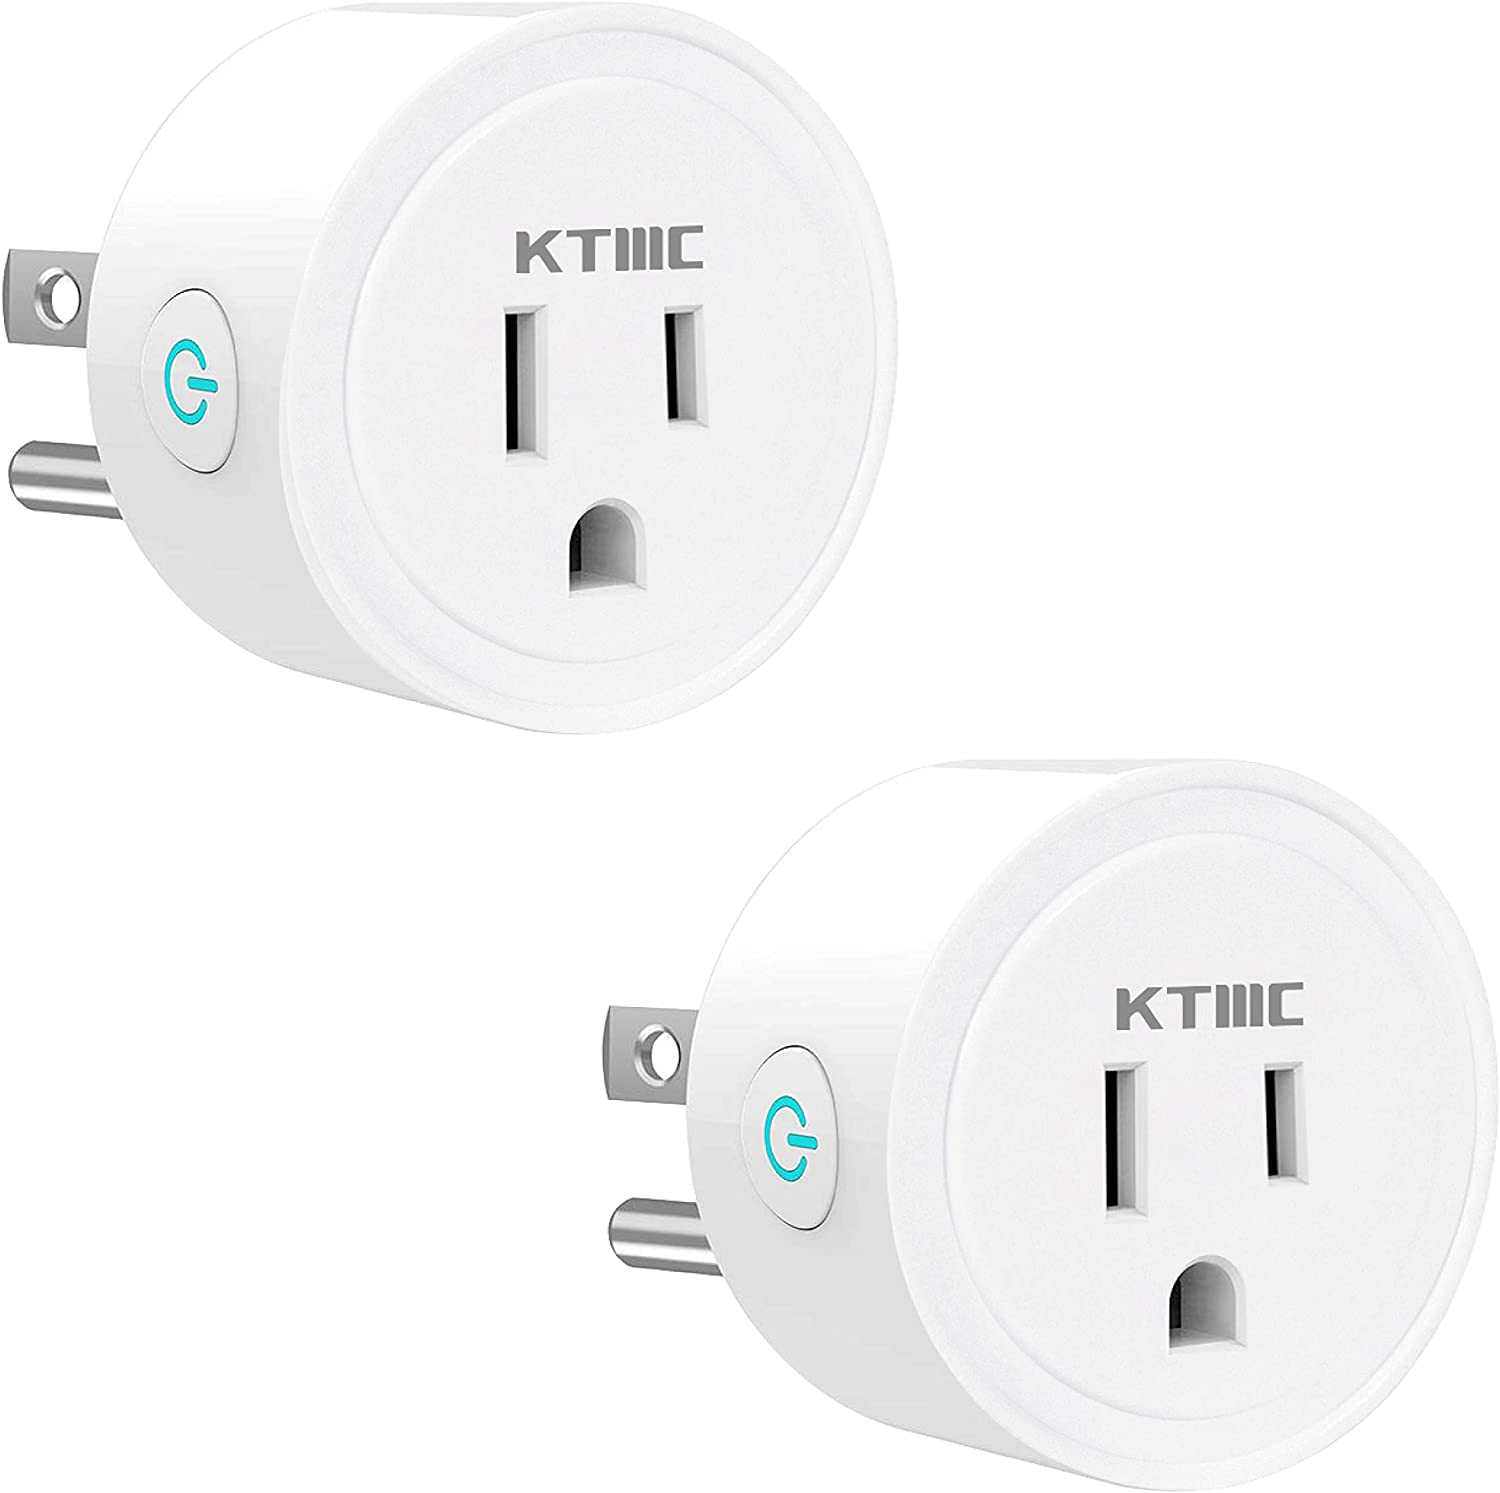 KTMC Smart Plug 2 Packs,Mini WiFi Smart Socket,Timer Outlet,Work with Amazon Alexa and Google Assistant, No Hub Required, Remote Control Your Devices from Anywhere, ETL Listed